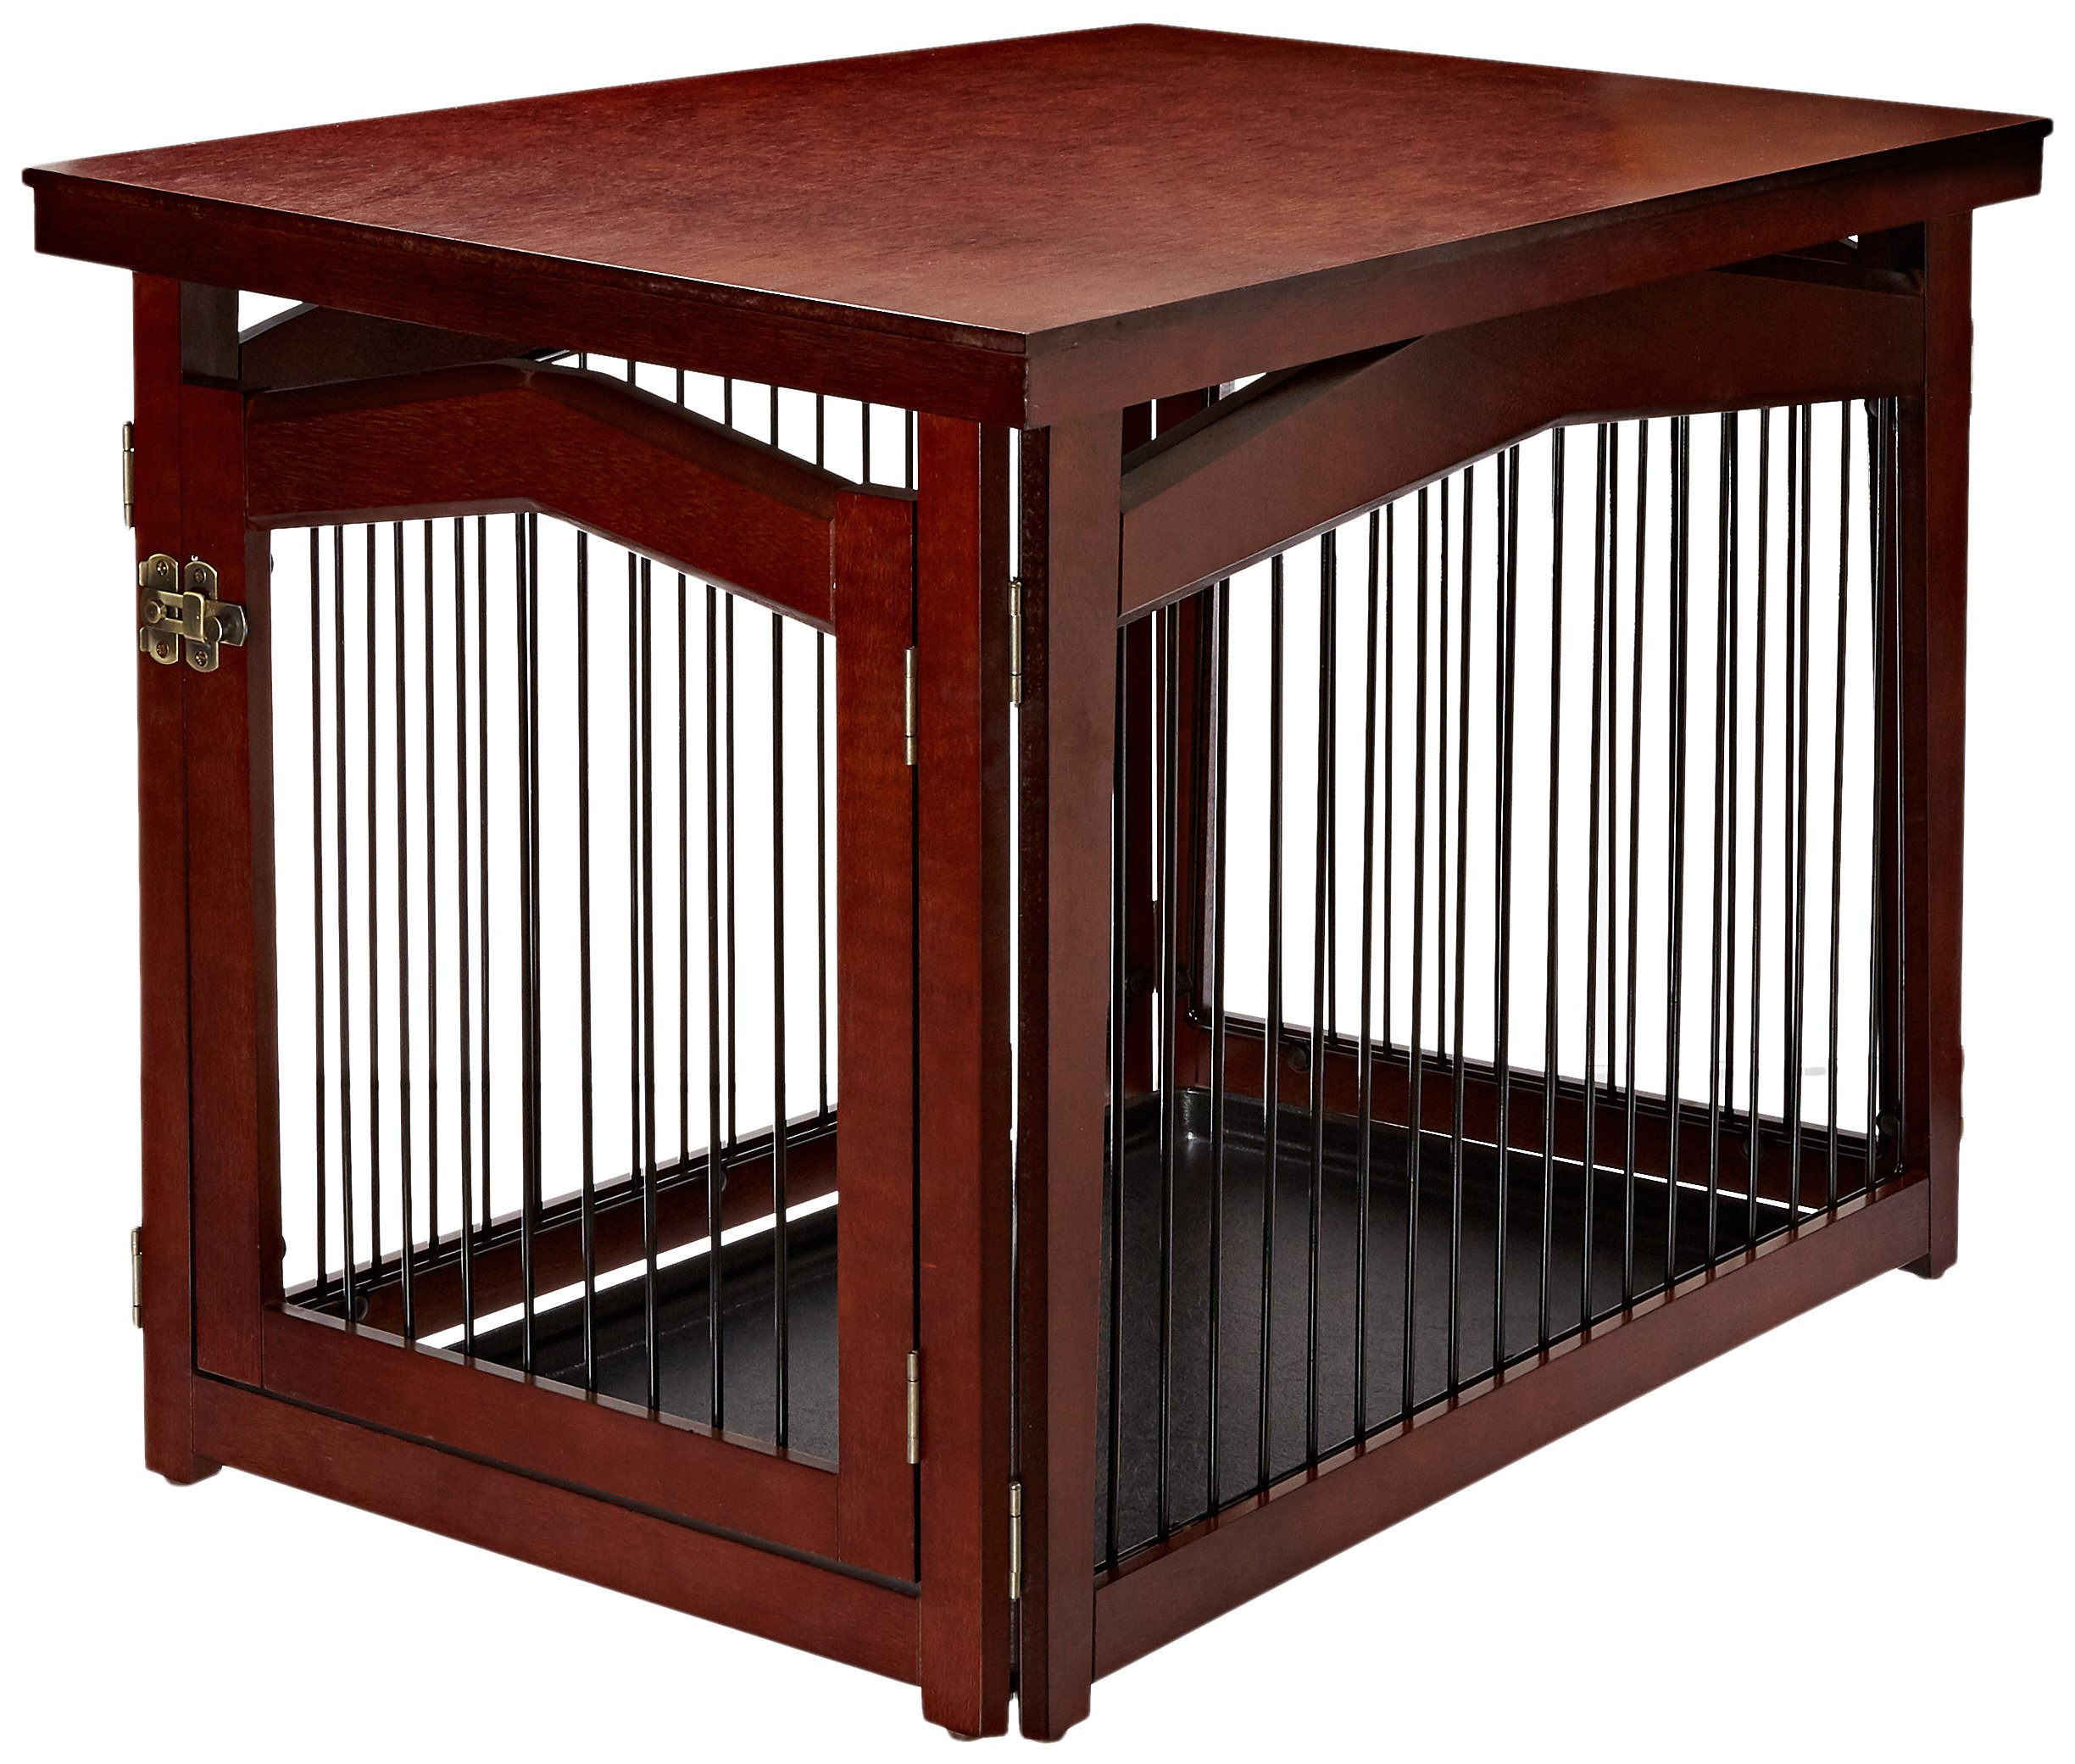 Merry Pet 2-in-1 Configurable Pet Crate and Gate, Medium by Merry Pet